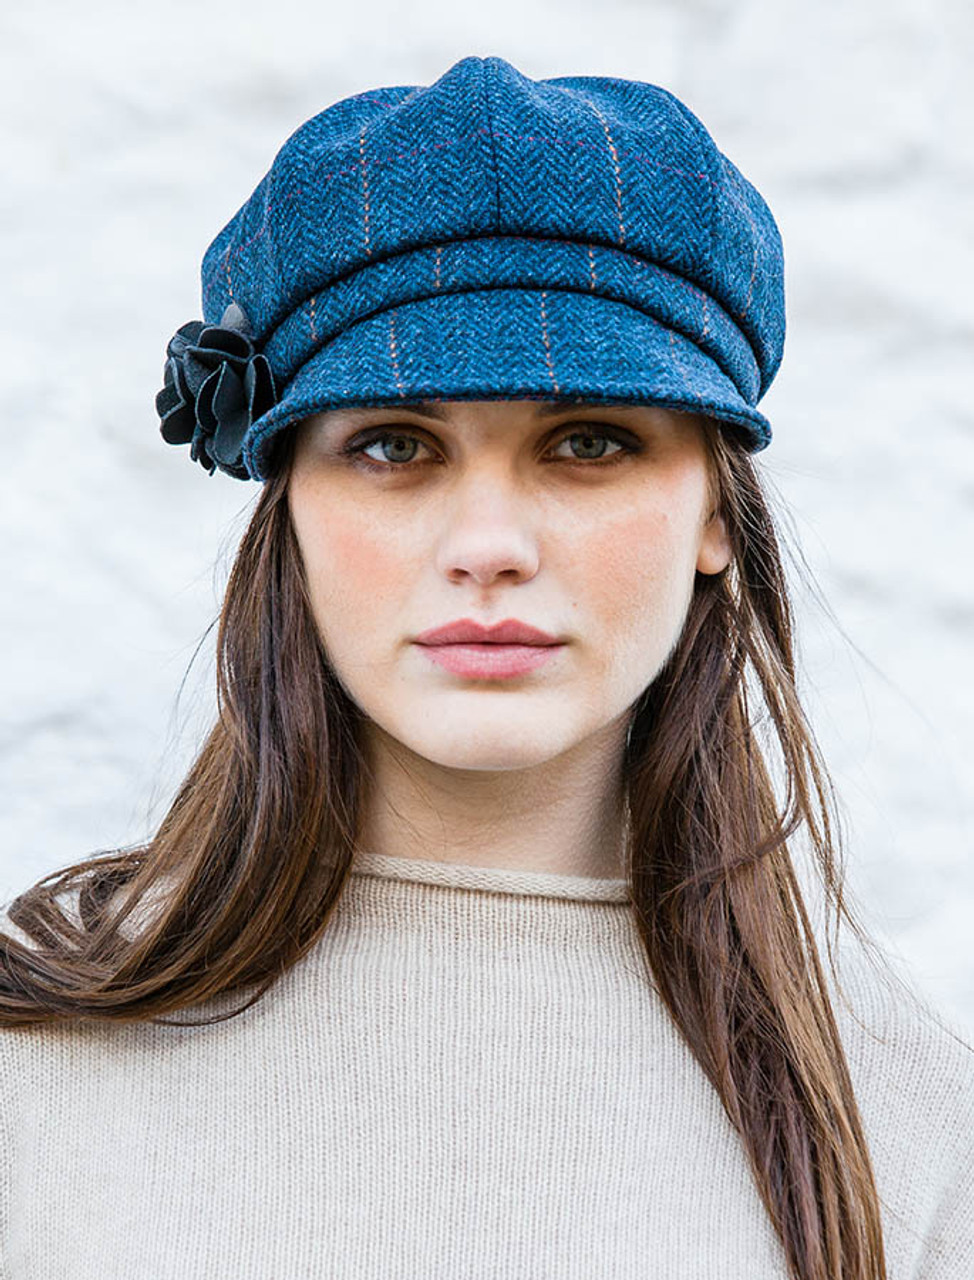 Ladies Tweed Newsboy Hat - Denim  d751b7f391a